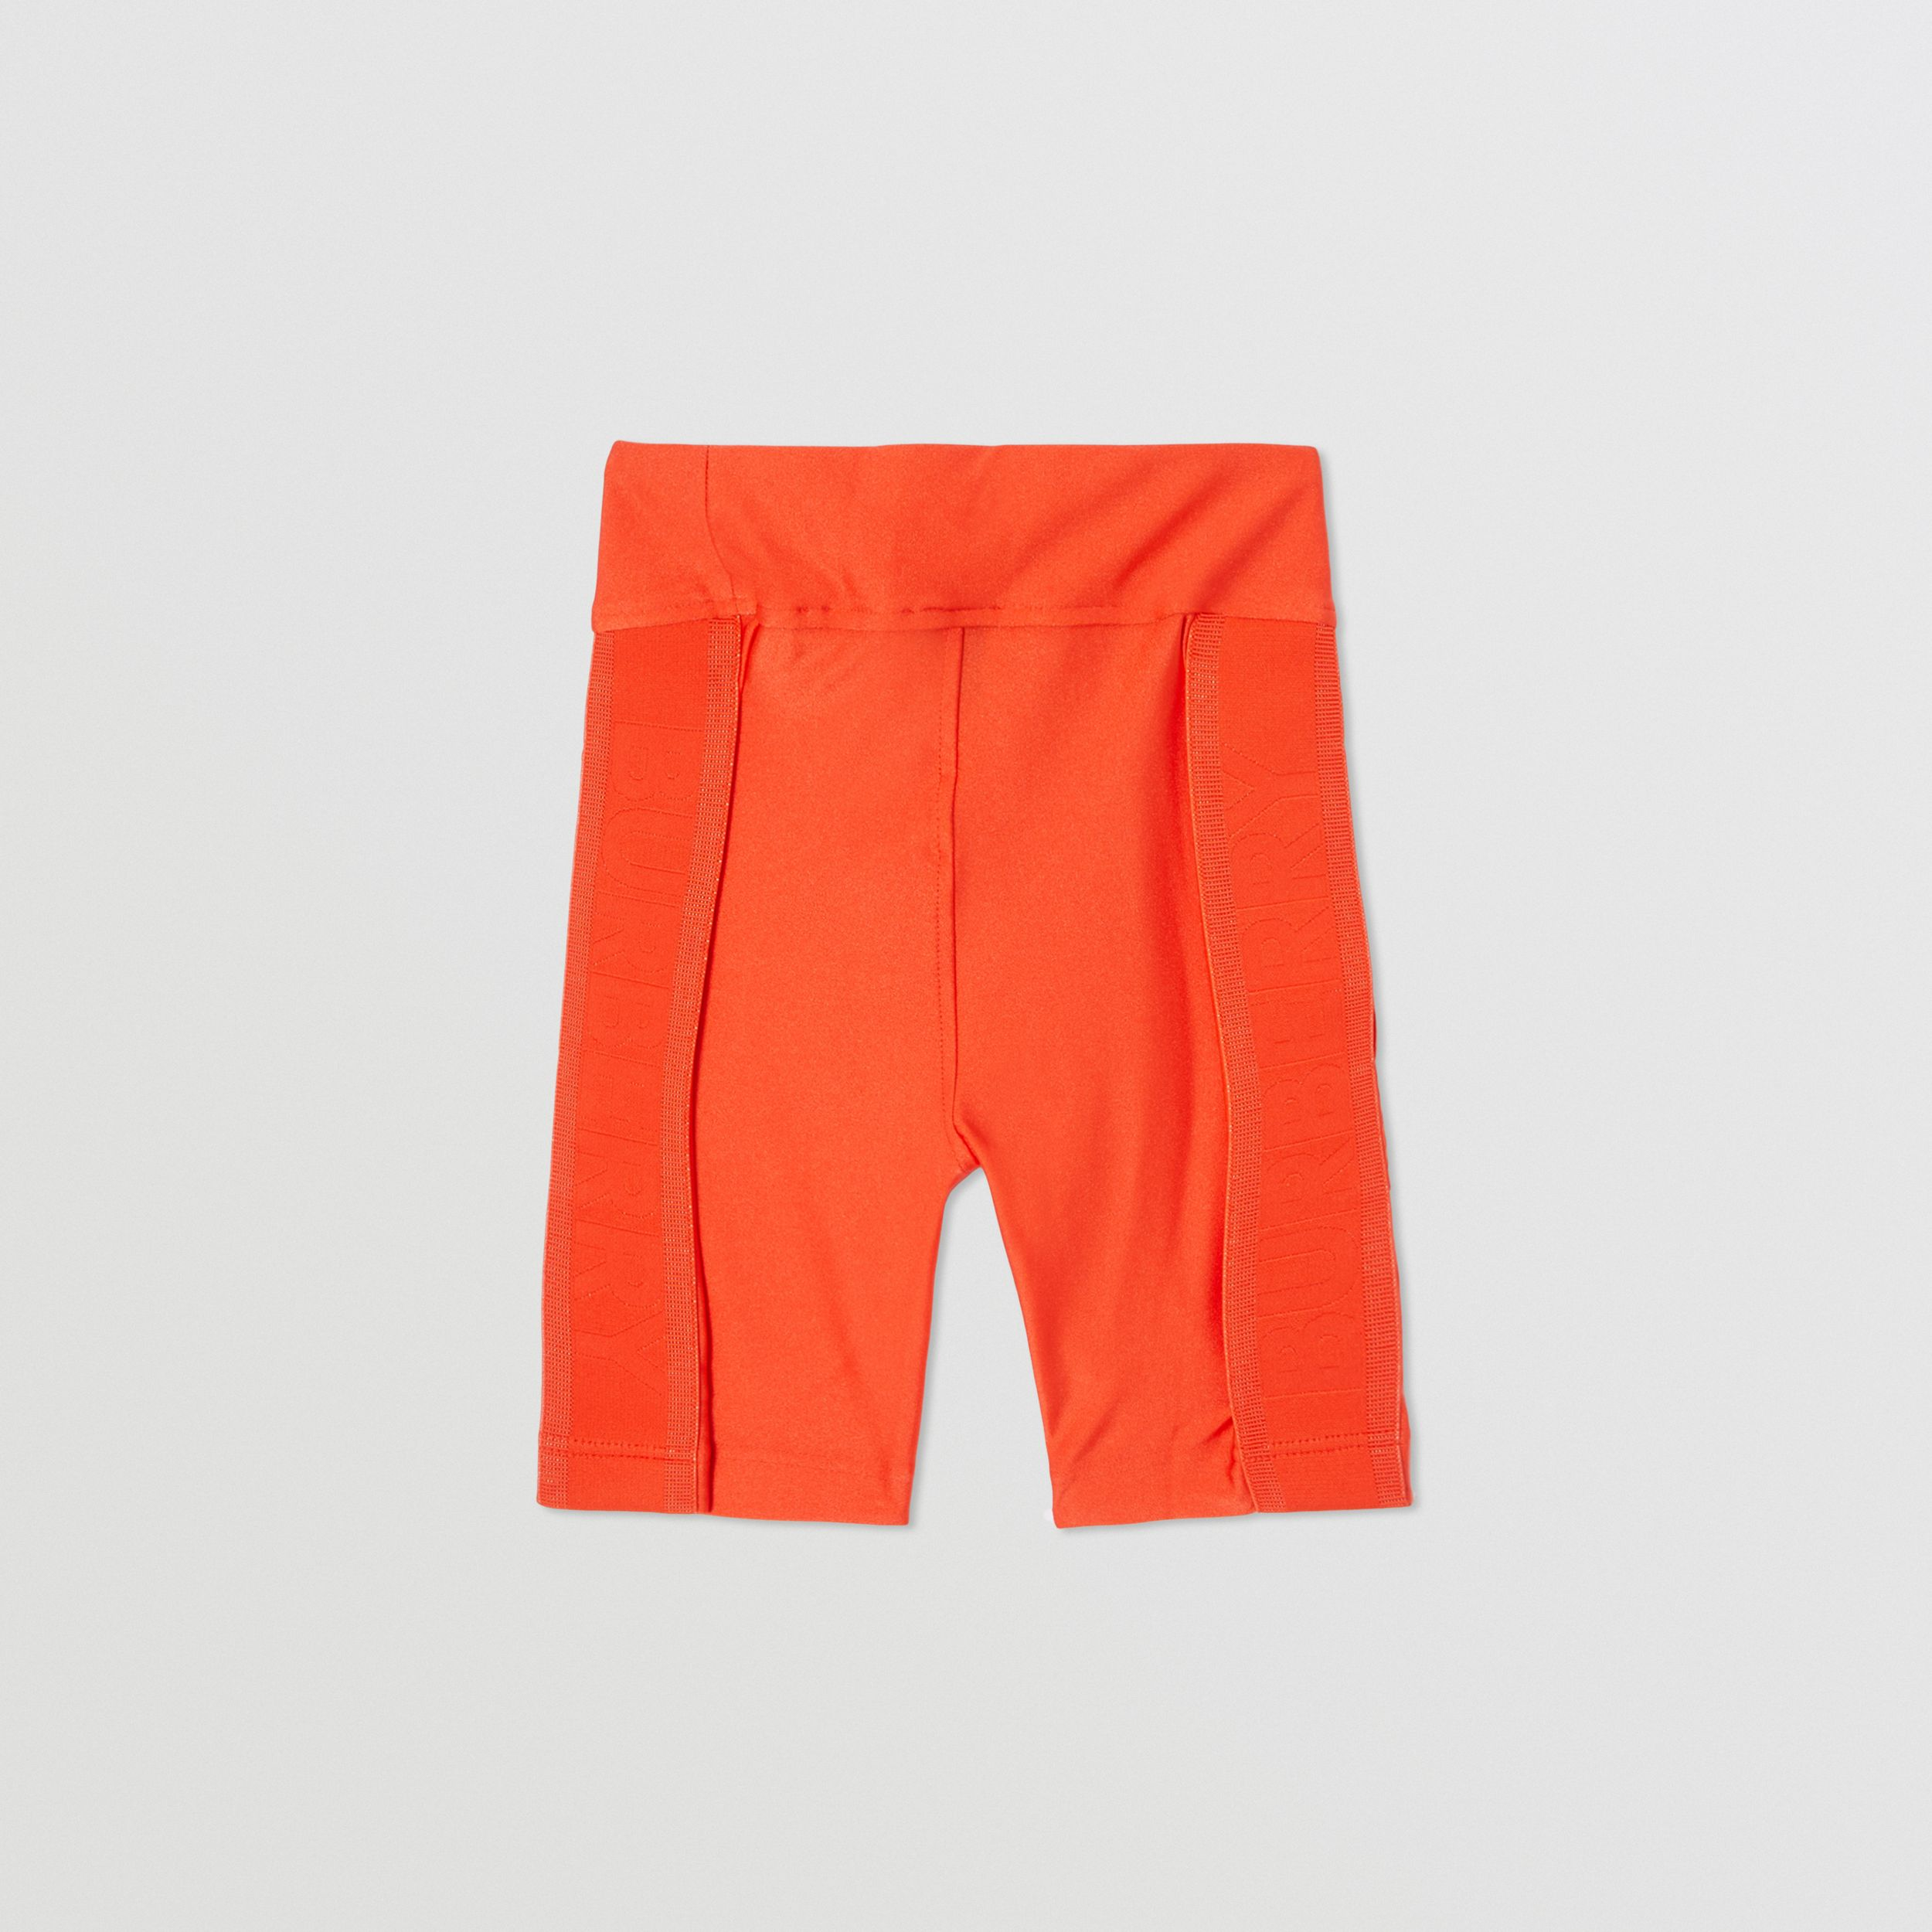 Coordinates Print Stretch Jersey Cycling Shorts in Orange Red | Burberry United States - 4